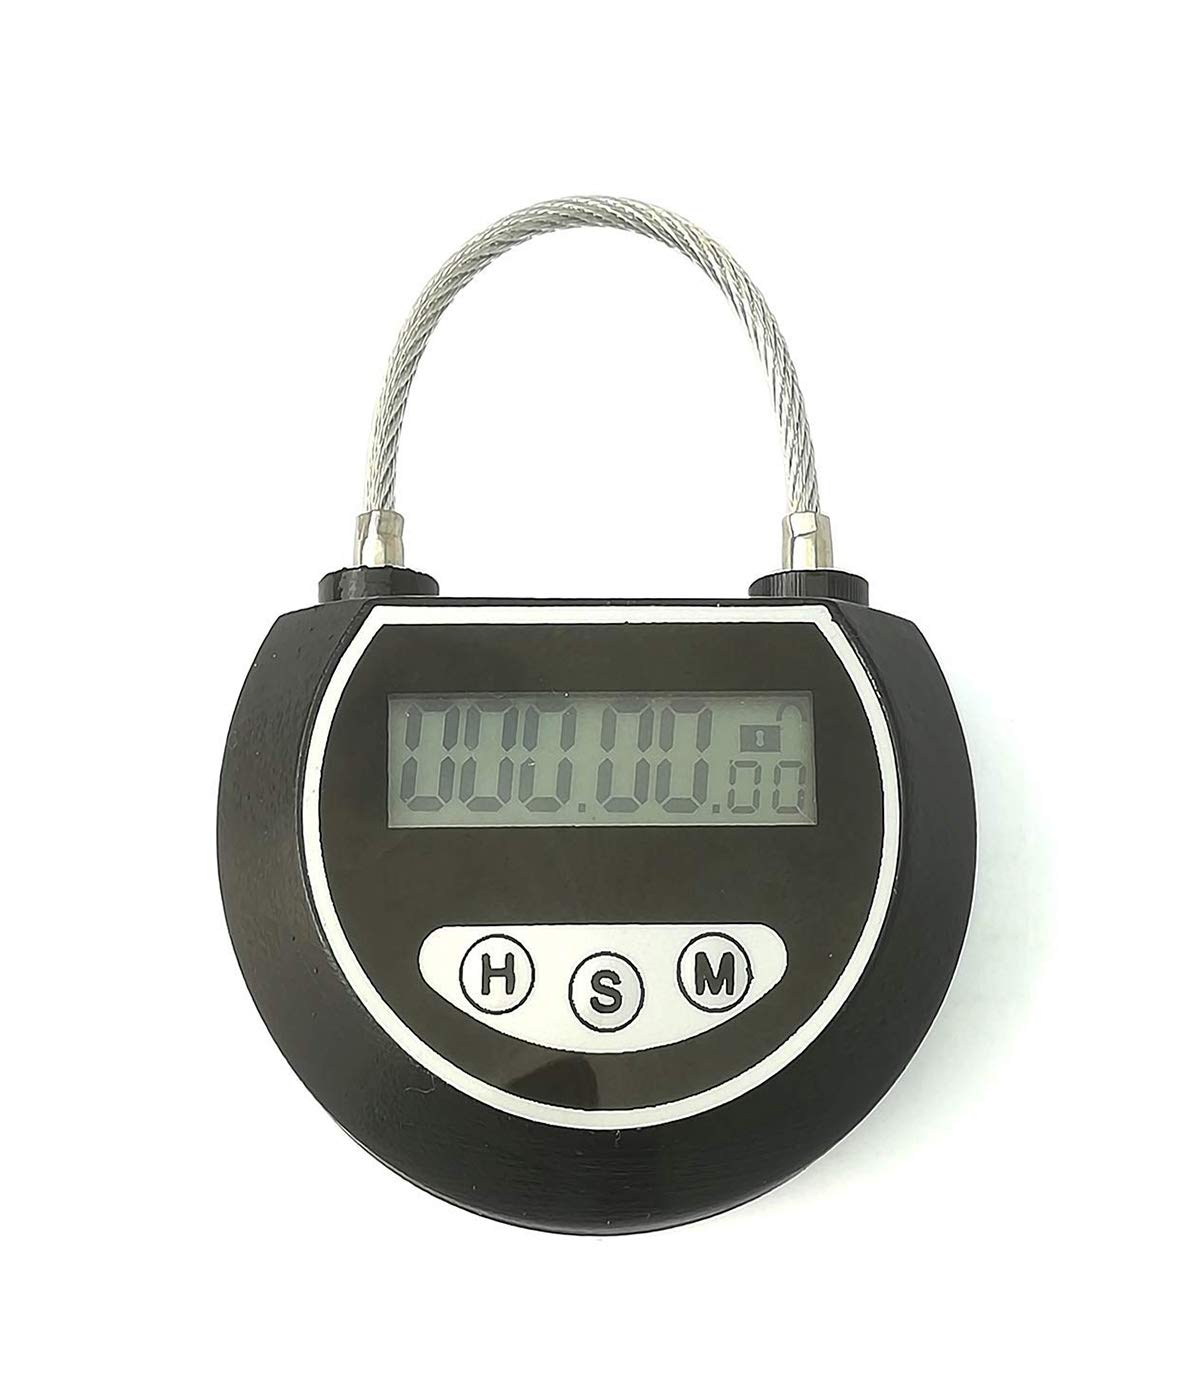 Electronic Timer Timed Locks Multi-Function Travel Lock Without Charging Use 3 Years (Black) by KMYS